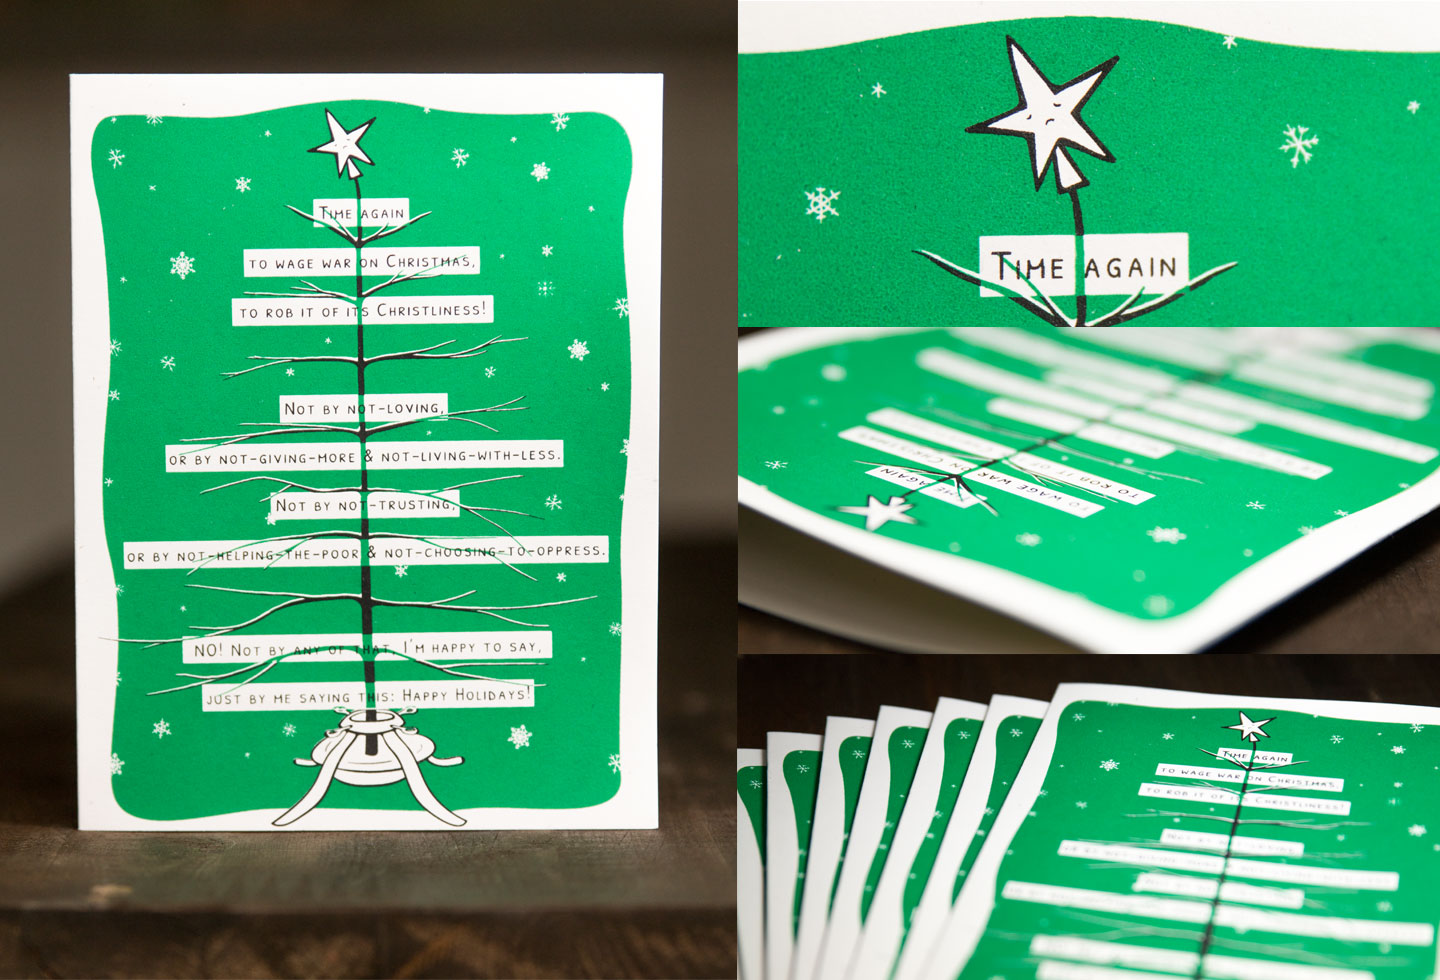 Happy Holidays Card by Sam Killermann - Socially Just Cards